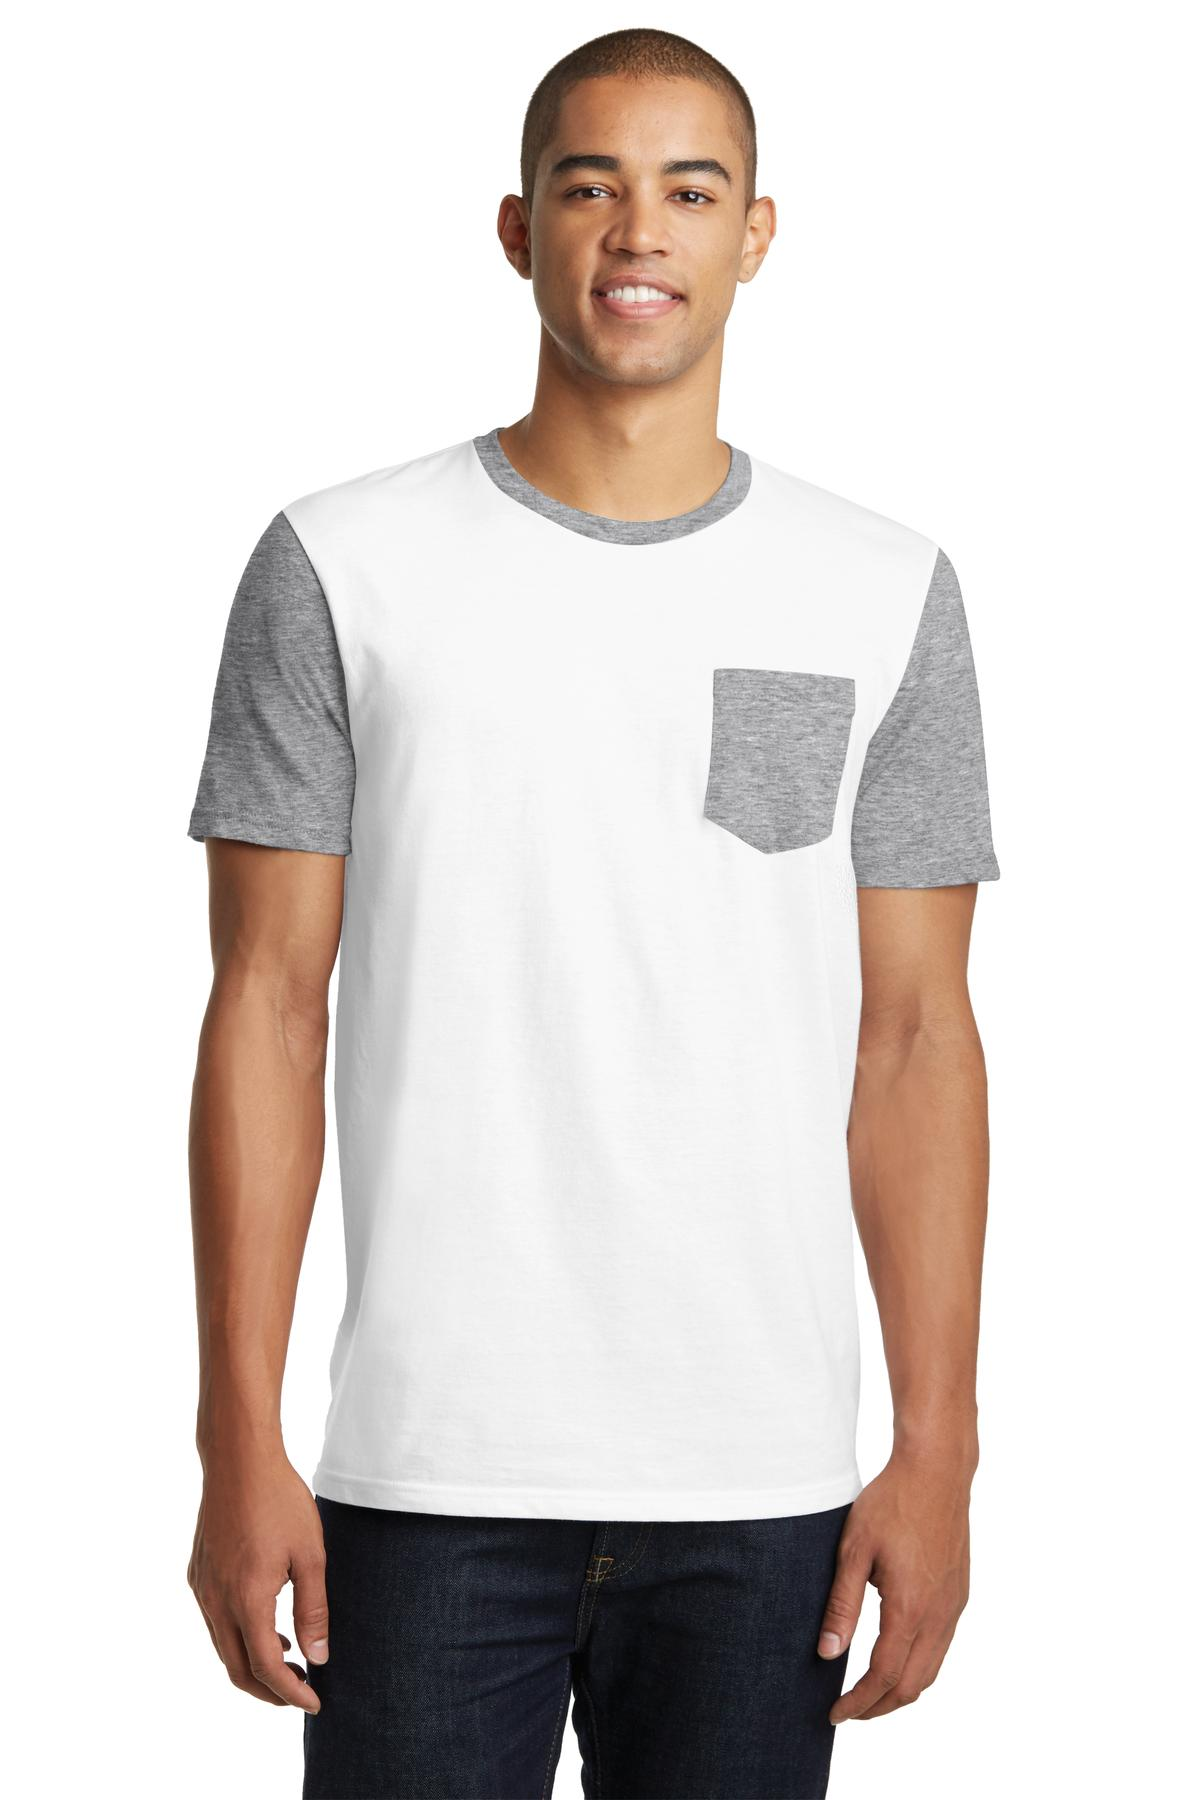 District  DT6000SP - Young Mens Very Important Tee  with Contrast Sleeves and Pocket